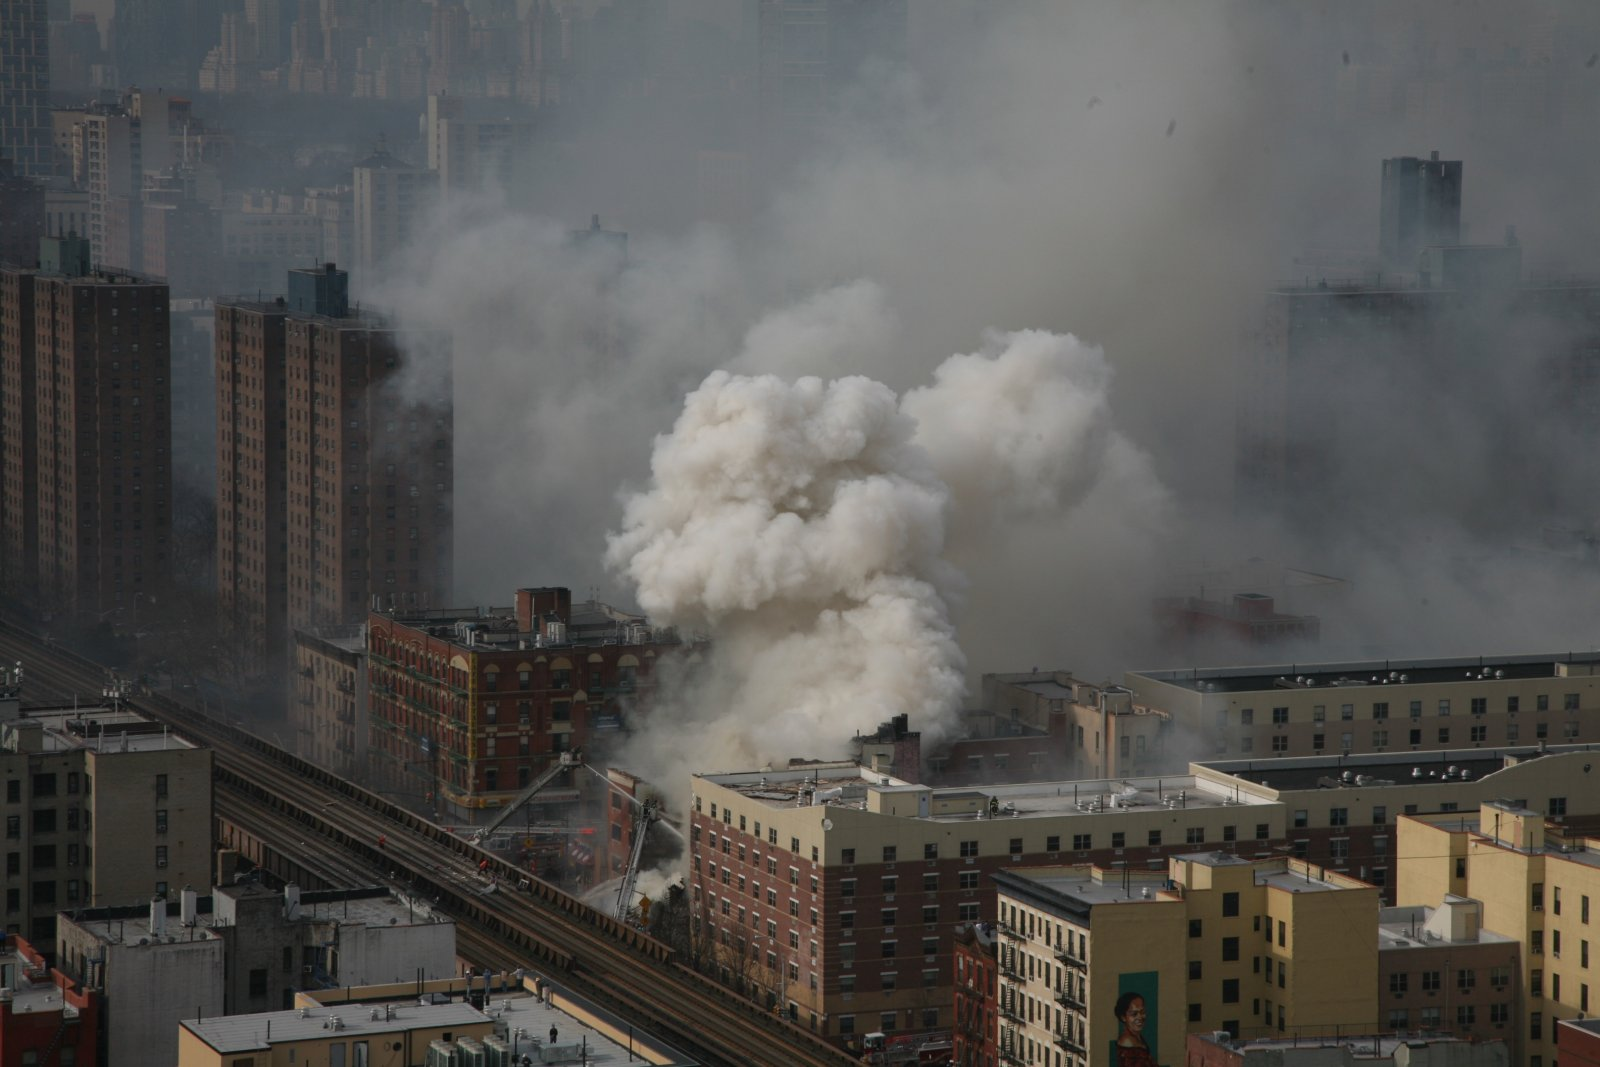 Manhattan's gas leaks are bad for the climate, and for people caught in explosions